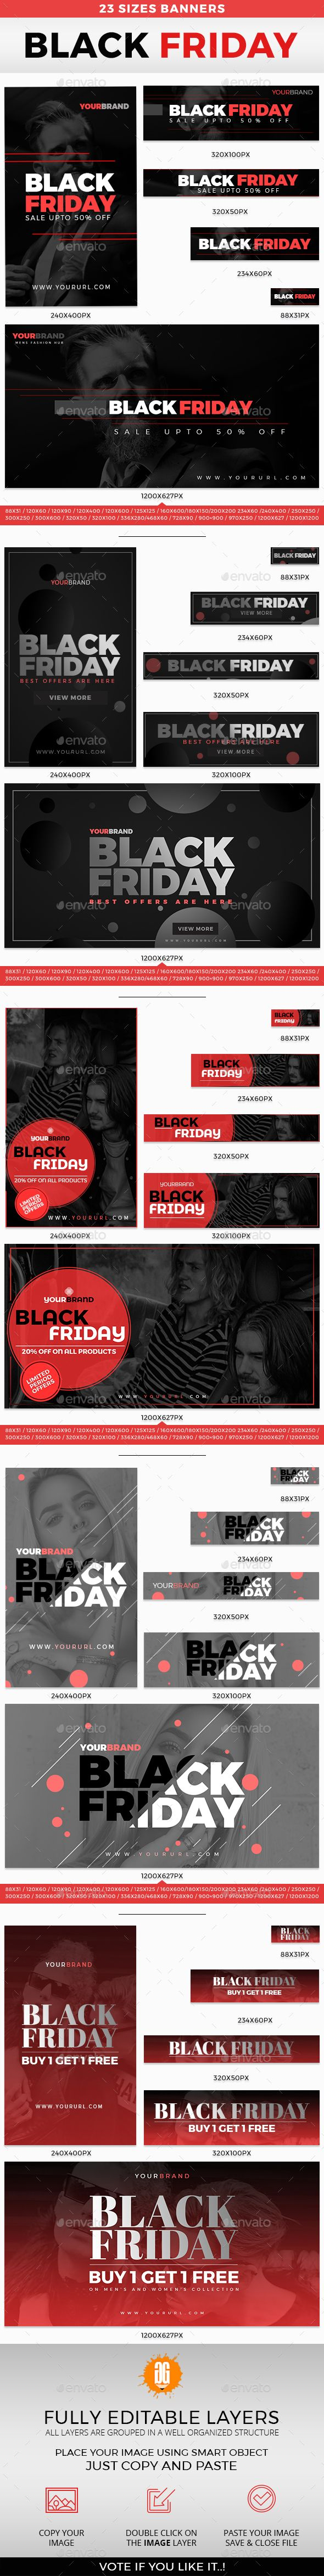 115 BLACK FRIDAY BANNERS - #Banners & Ads #Web Elements